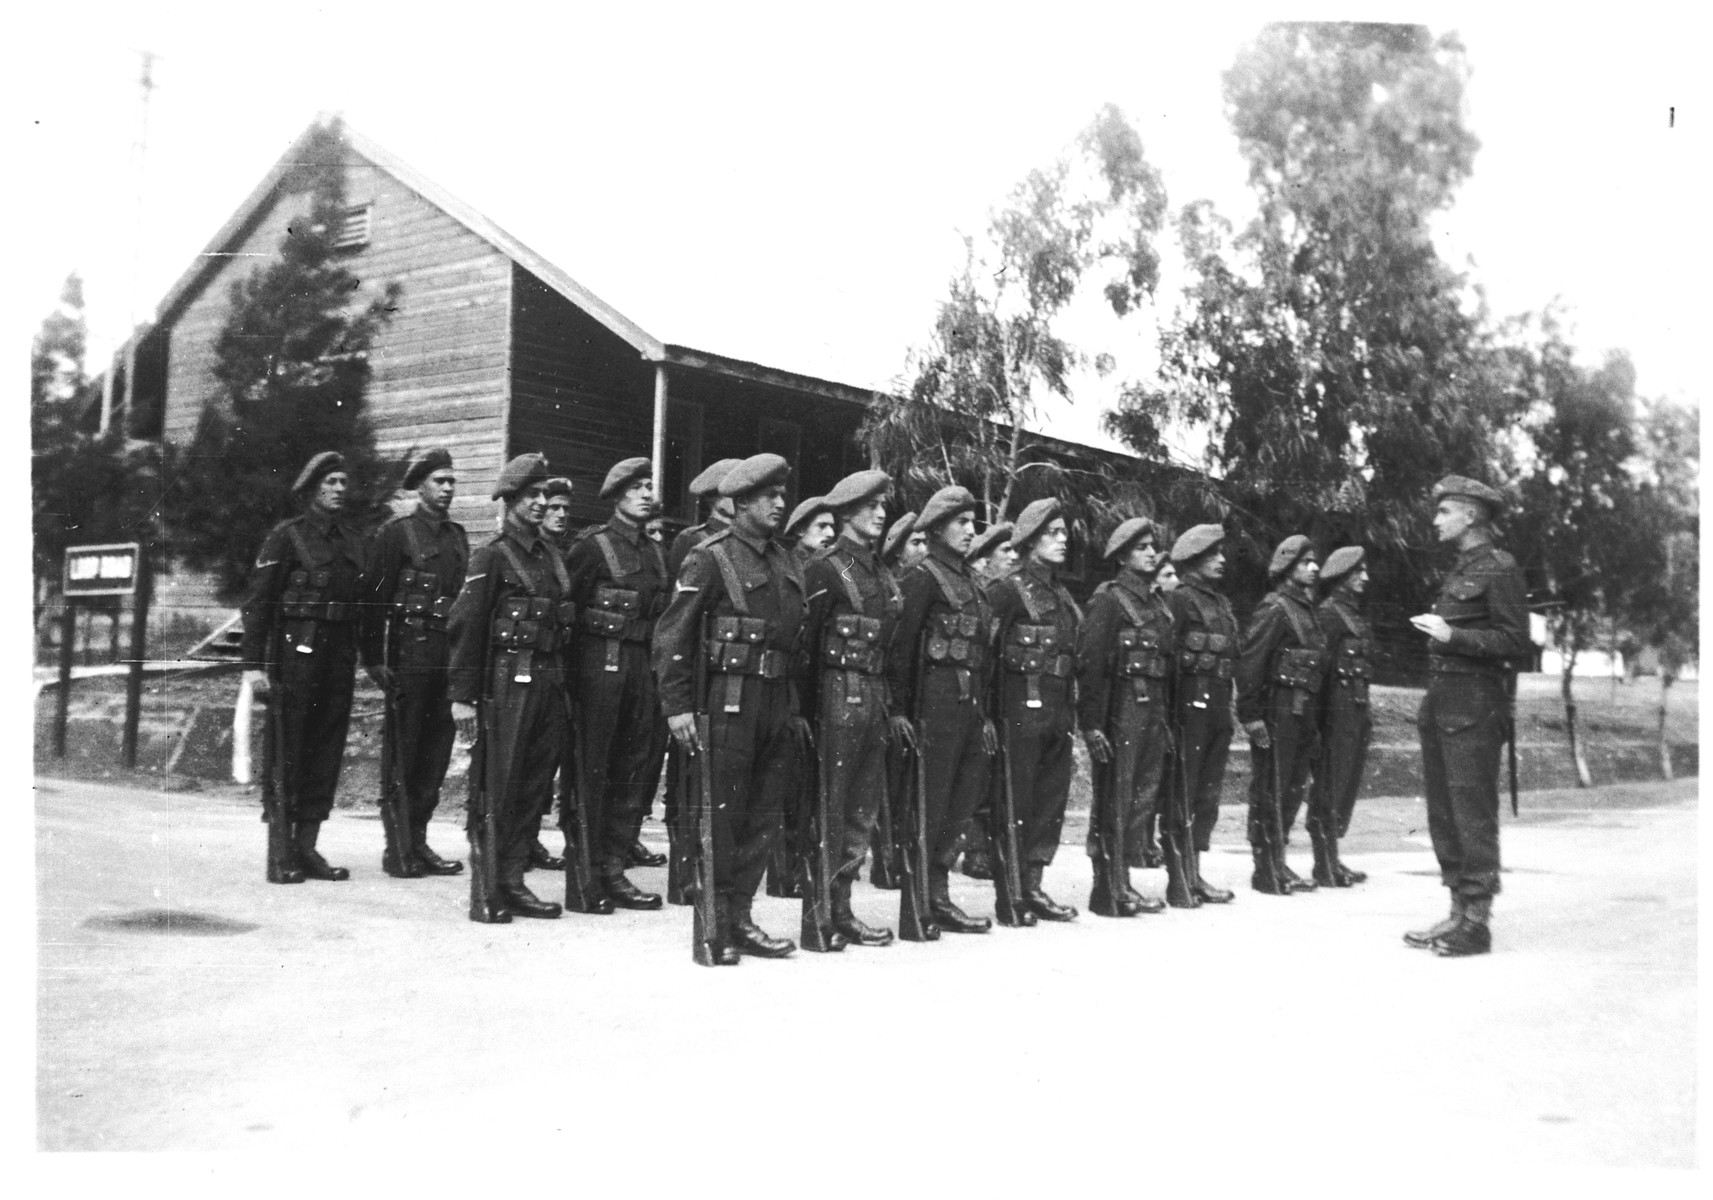 A unit of Jewish recruits to the British army in Palestine stand in formation on their base in Sarafand.  Among those pictured is Arthur Einhorn.